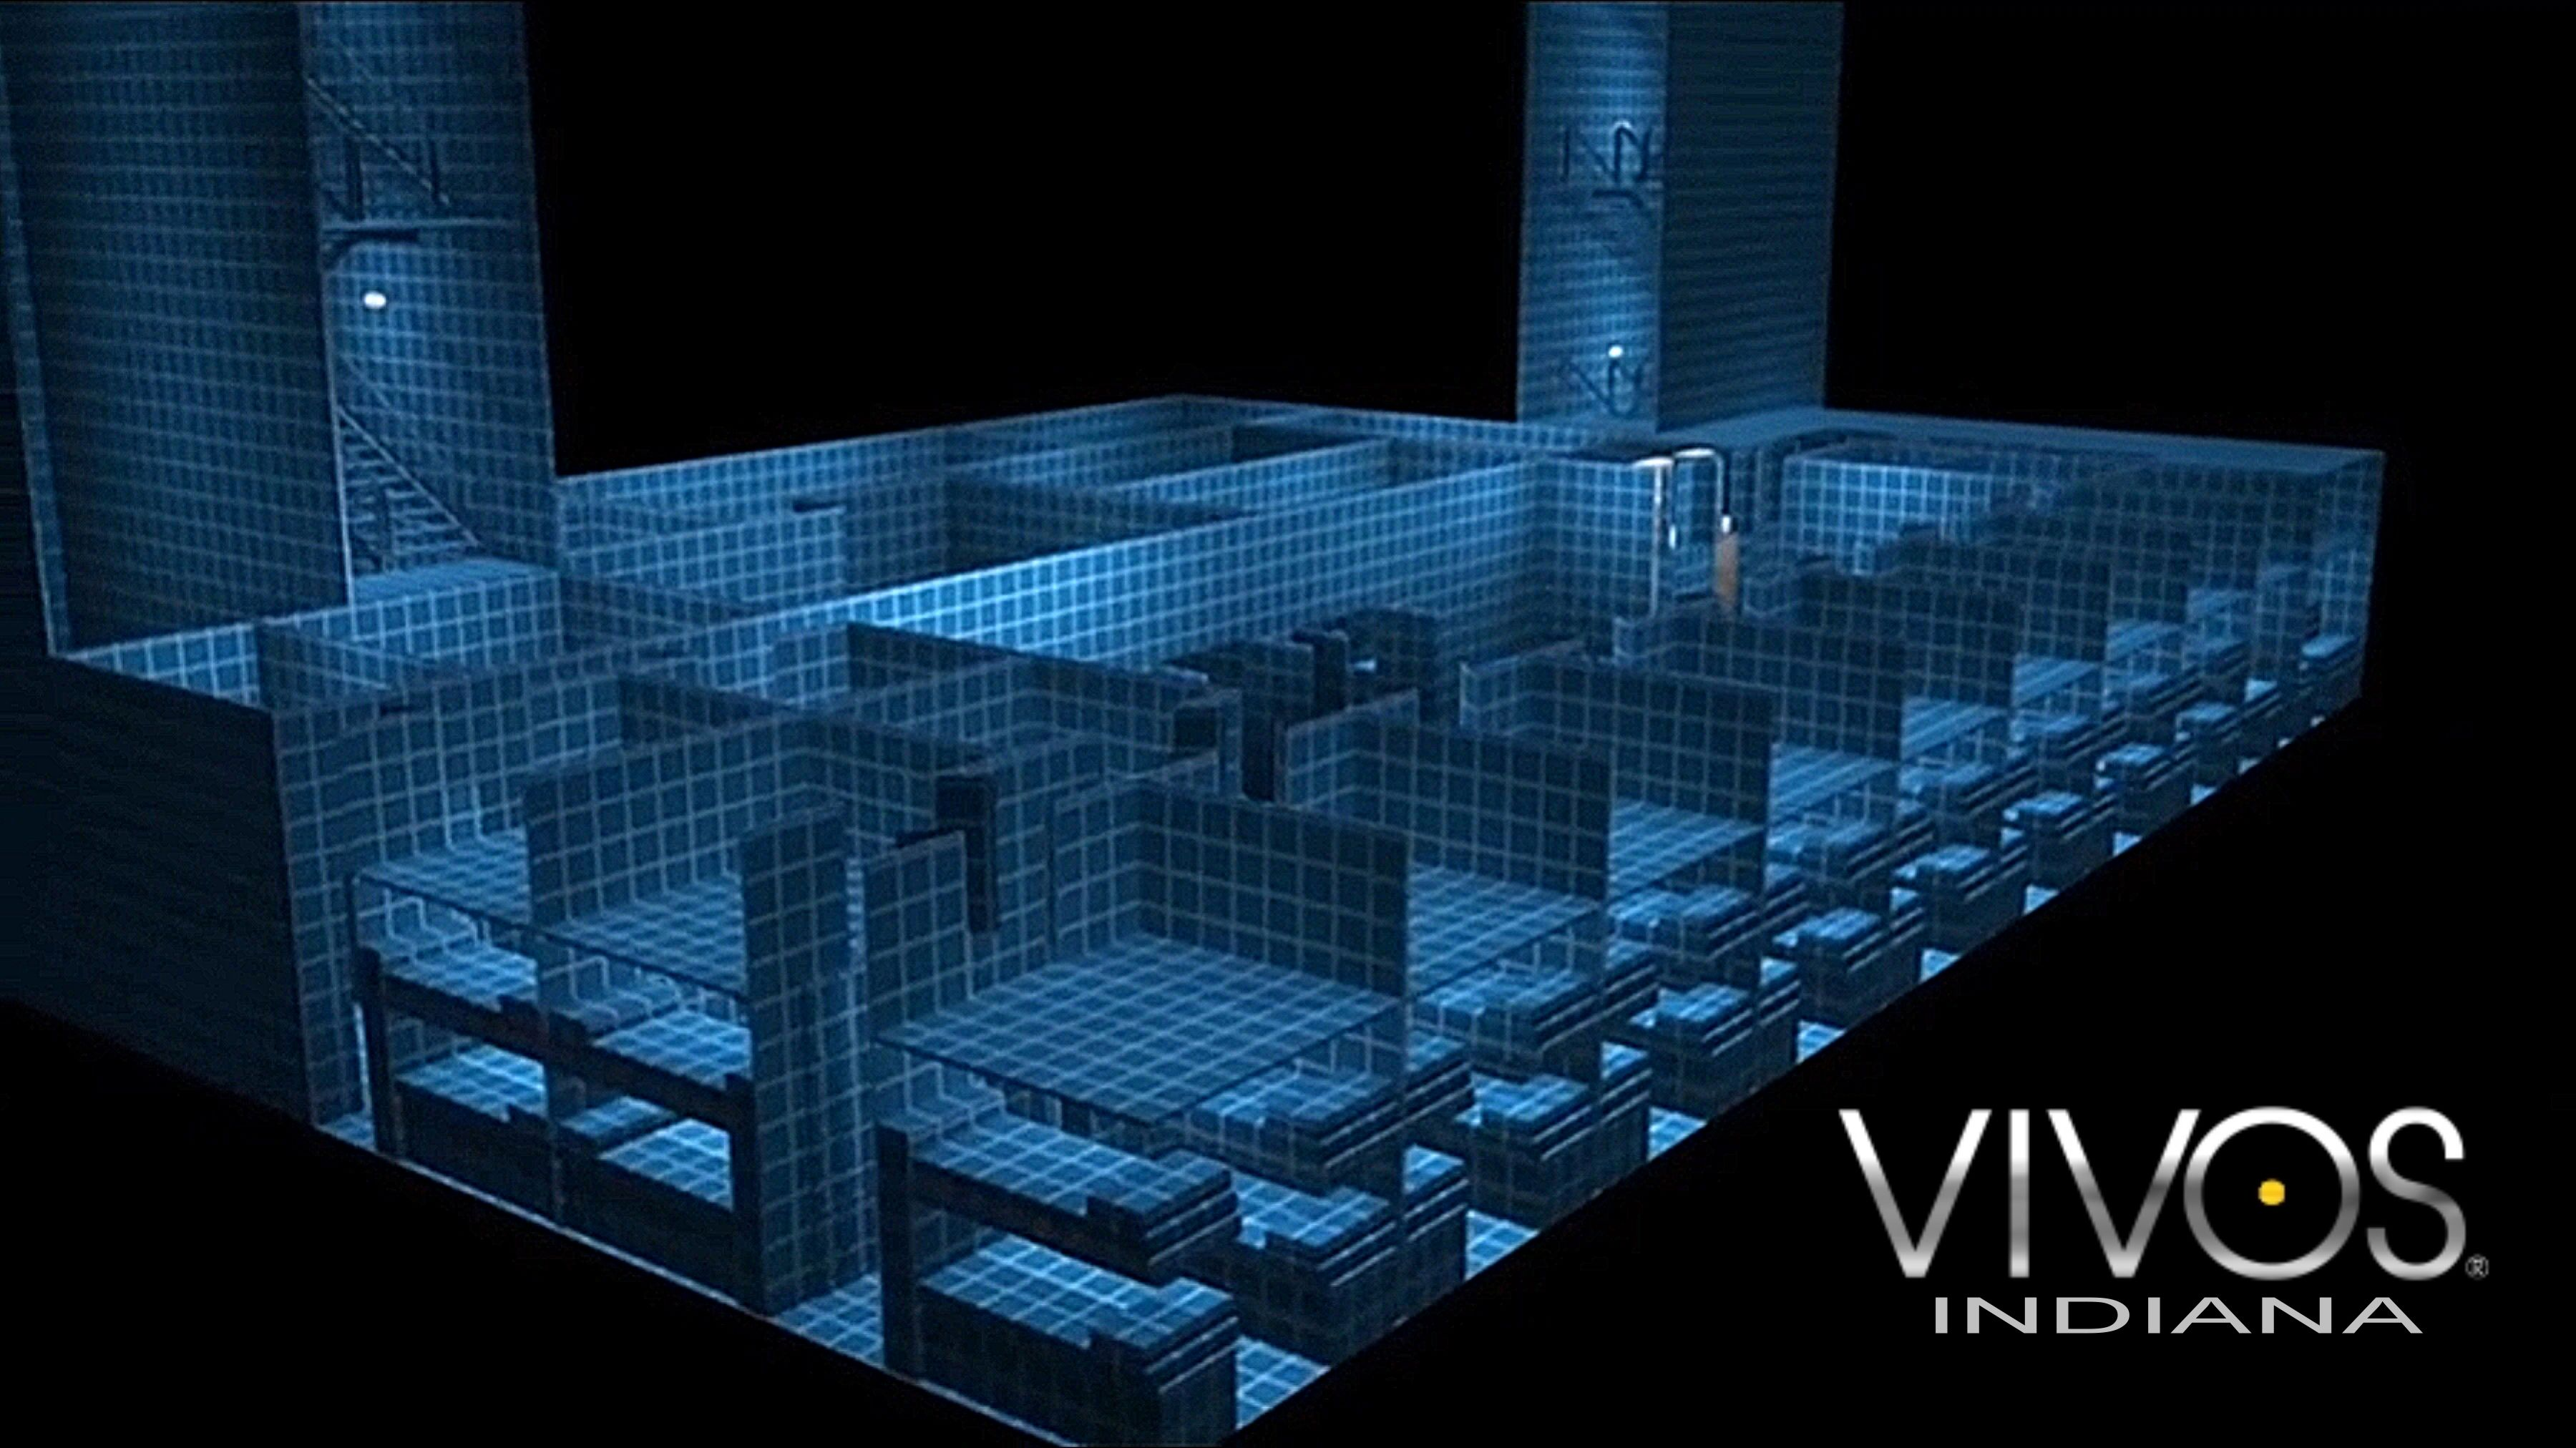 3D rendering of the Vivos Indiana underground nuclear blast proof